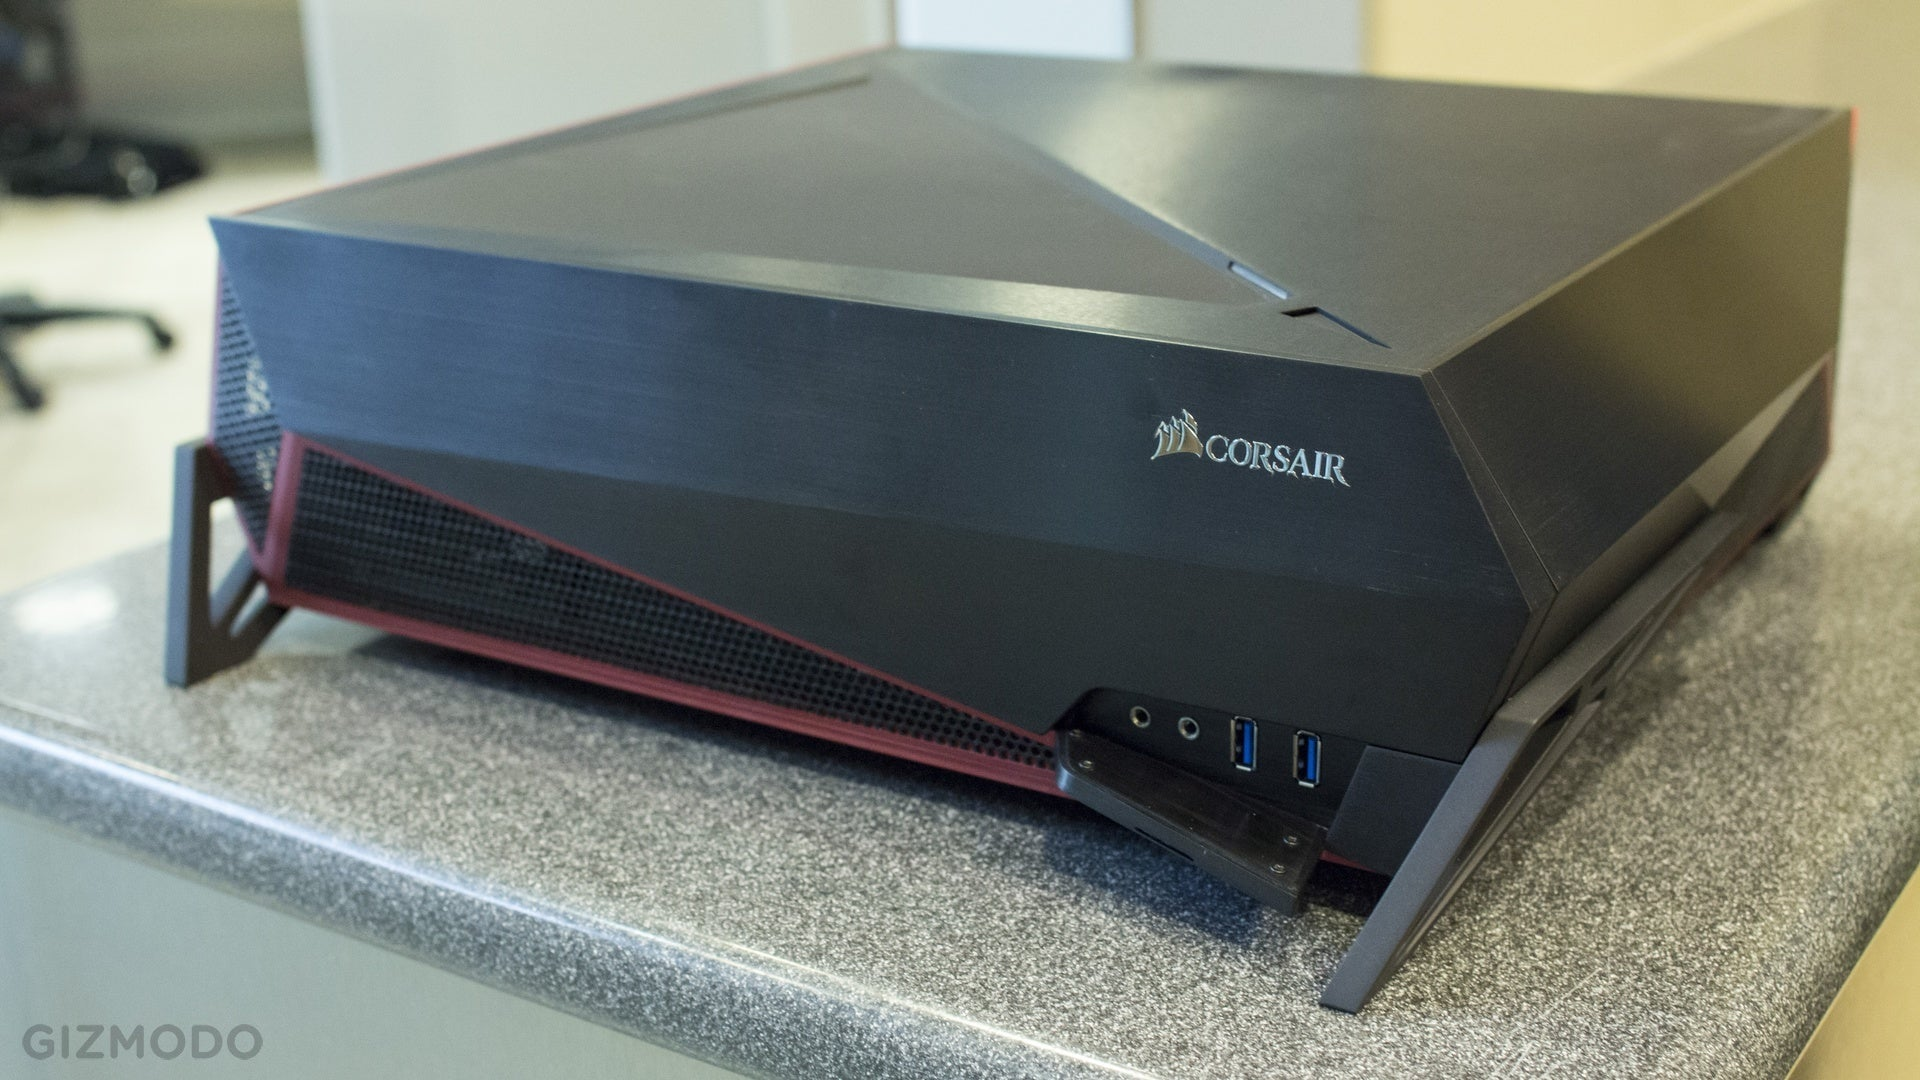 Marvelous Corsair Bulldog: A Living Room PC With A Face Only A Gamer Could Love